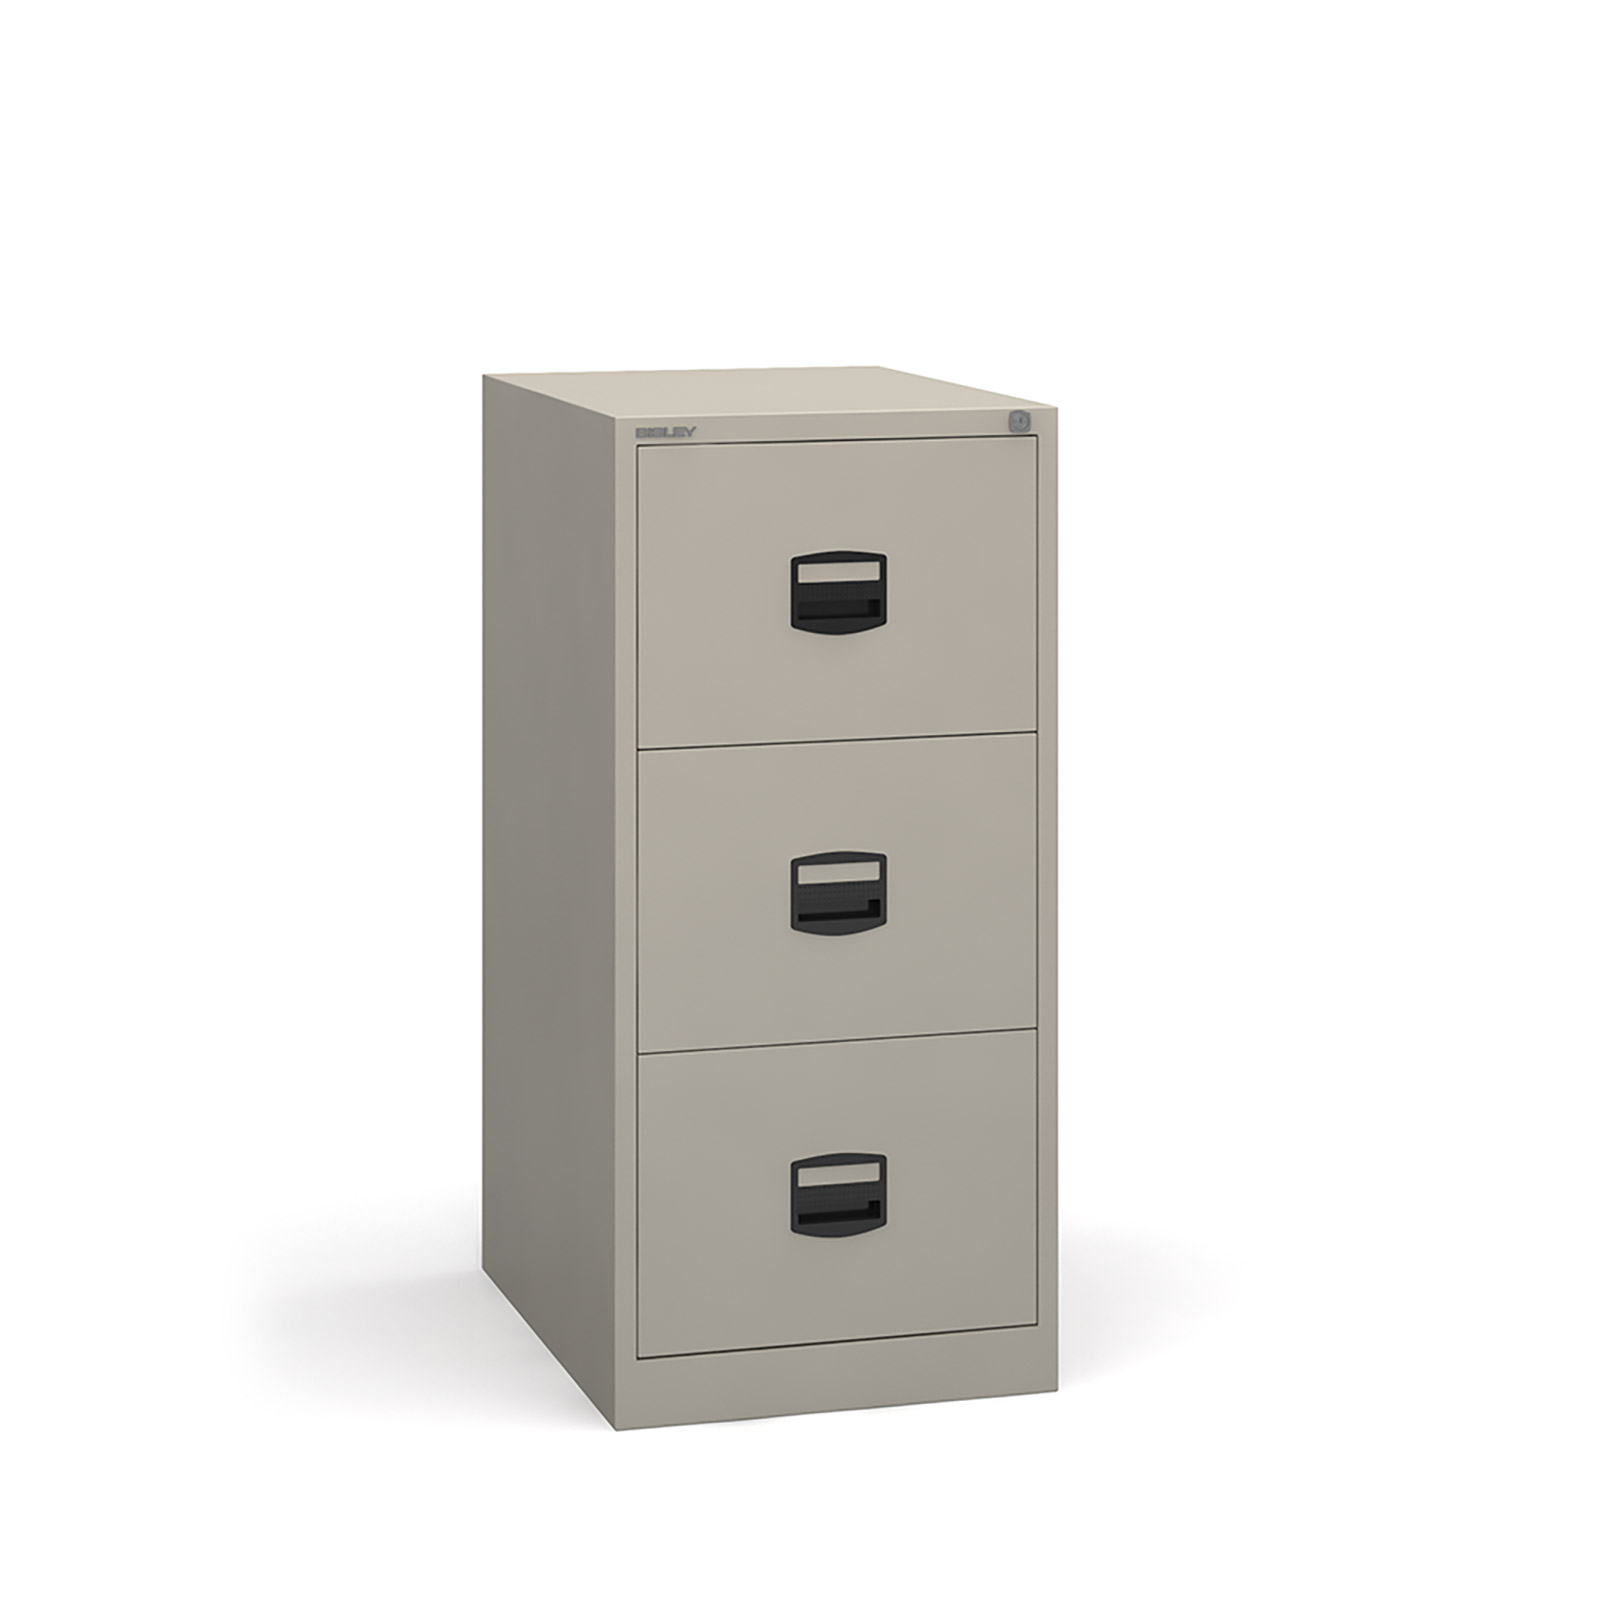 3 drawer contract filing cabinet in Grey